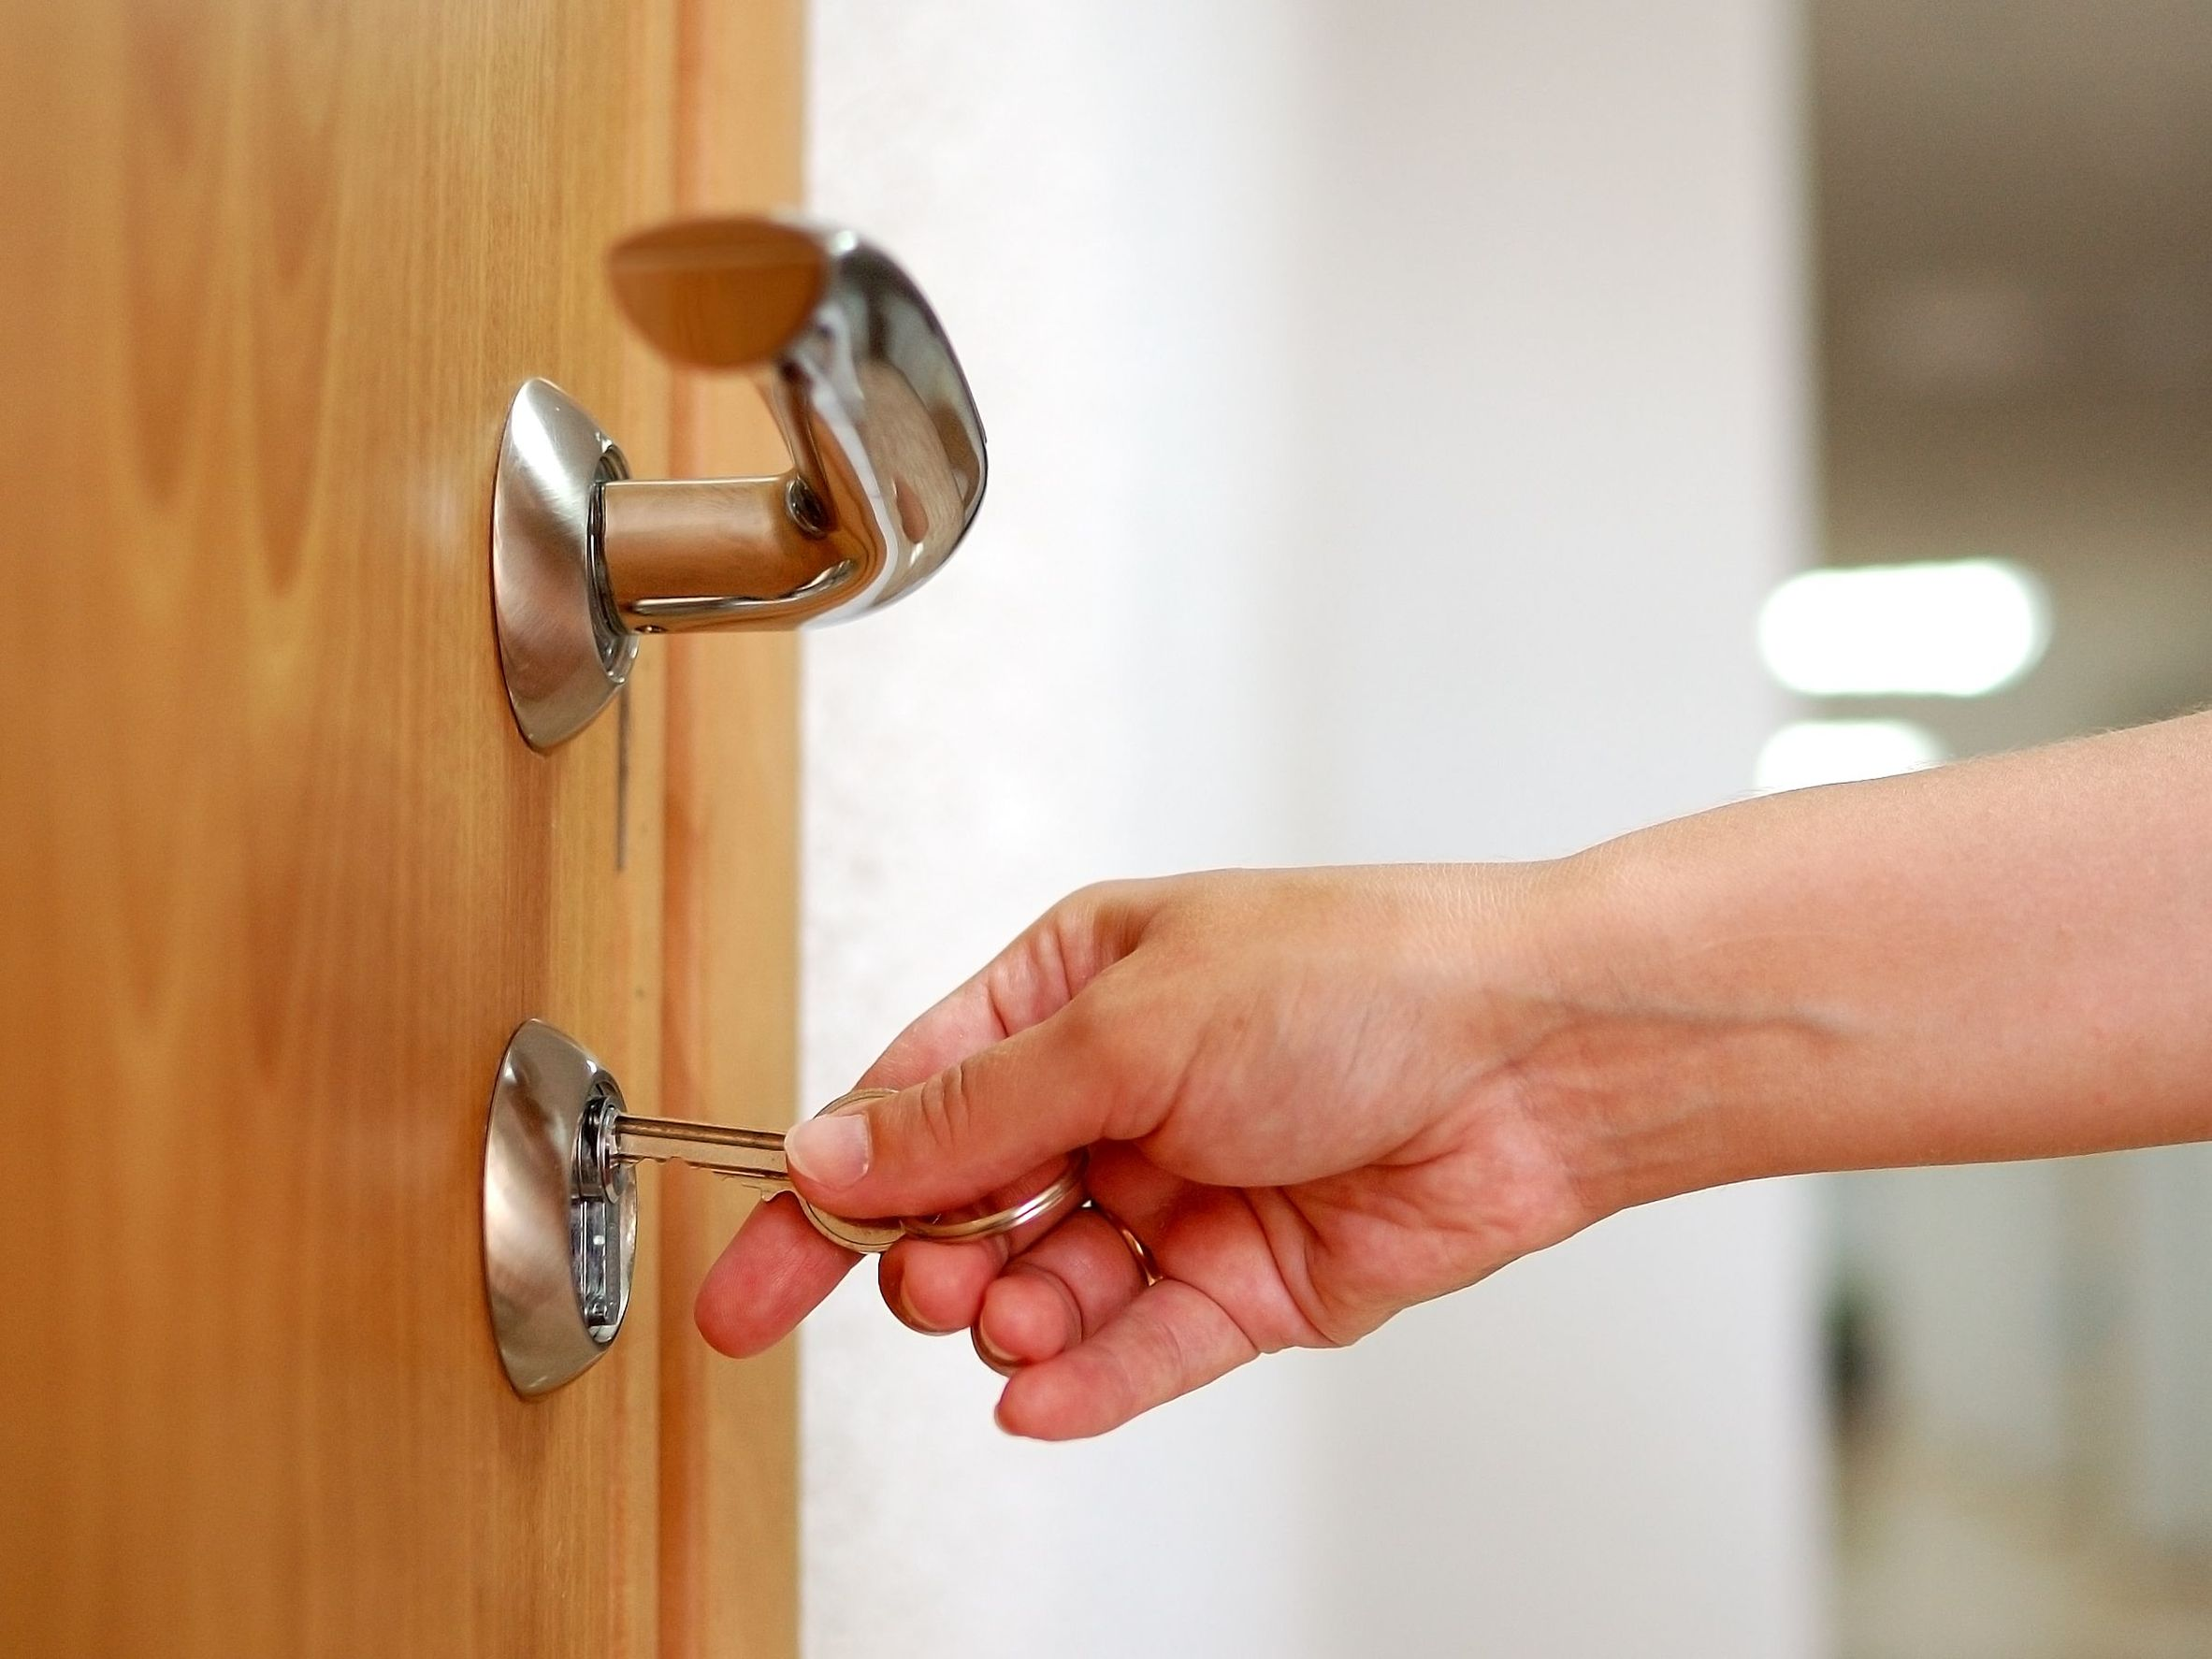 Read This Article if You Want to Find the Best Locksmith